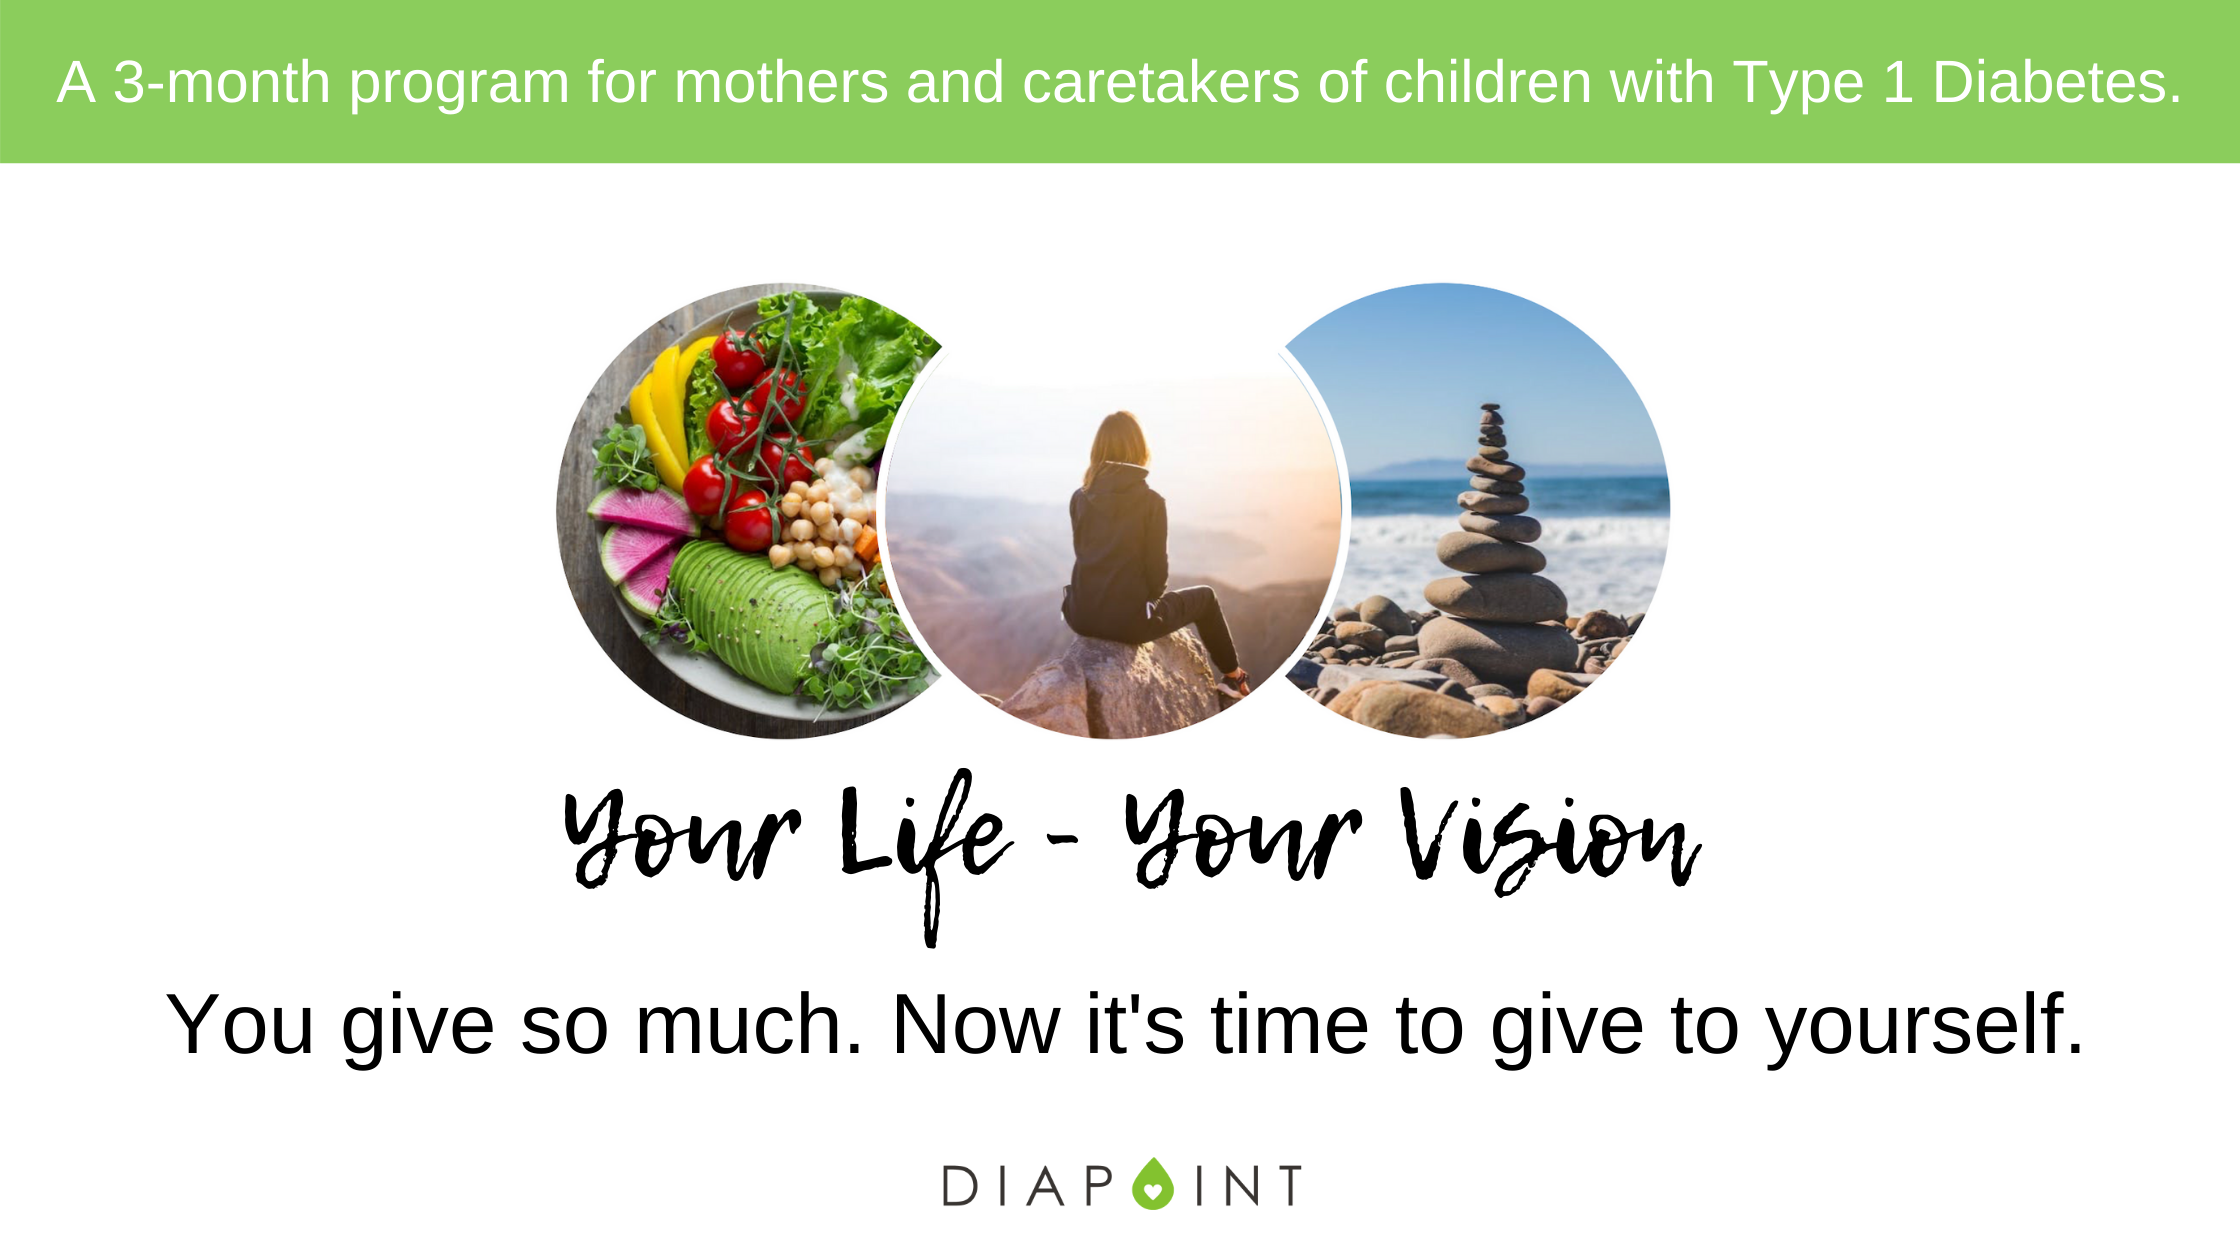 Self-care for moms of kids with diabetes